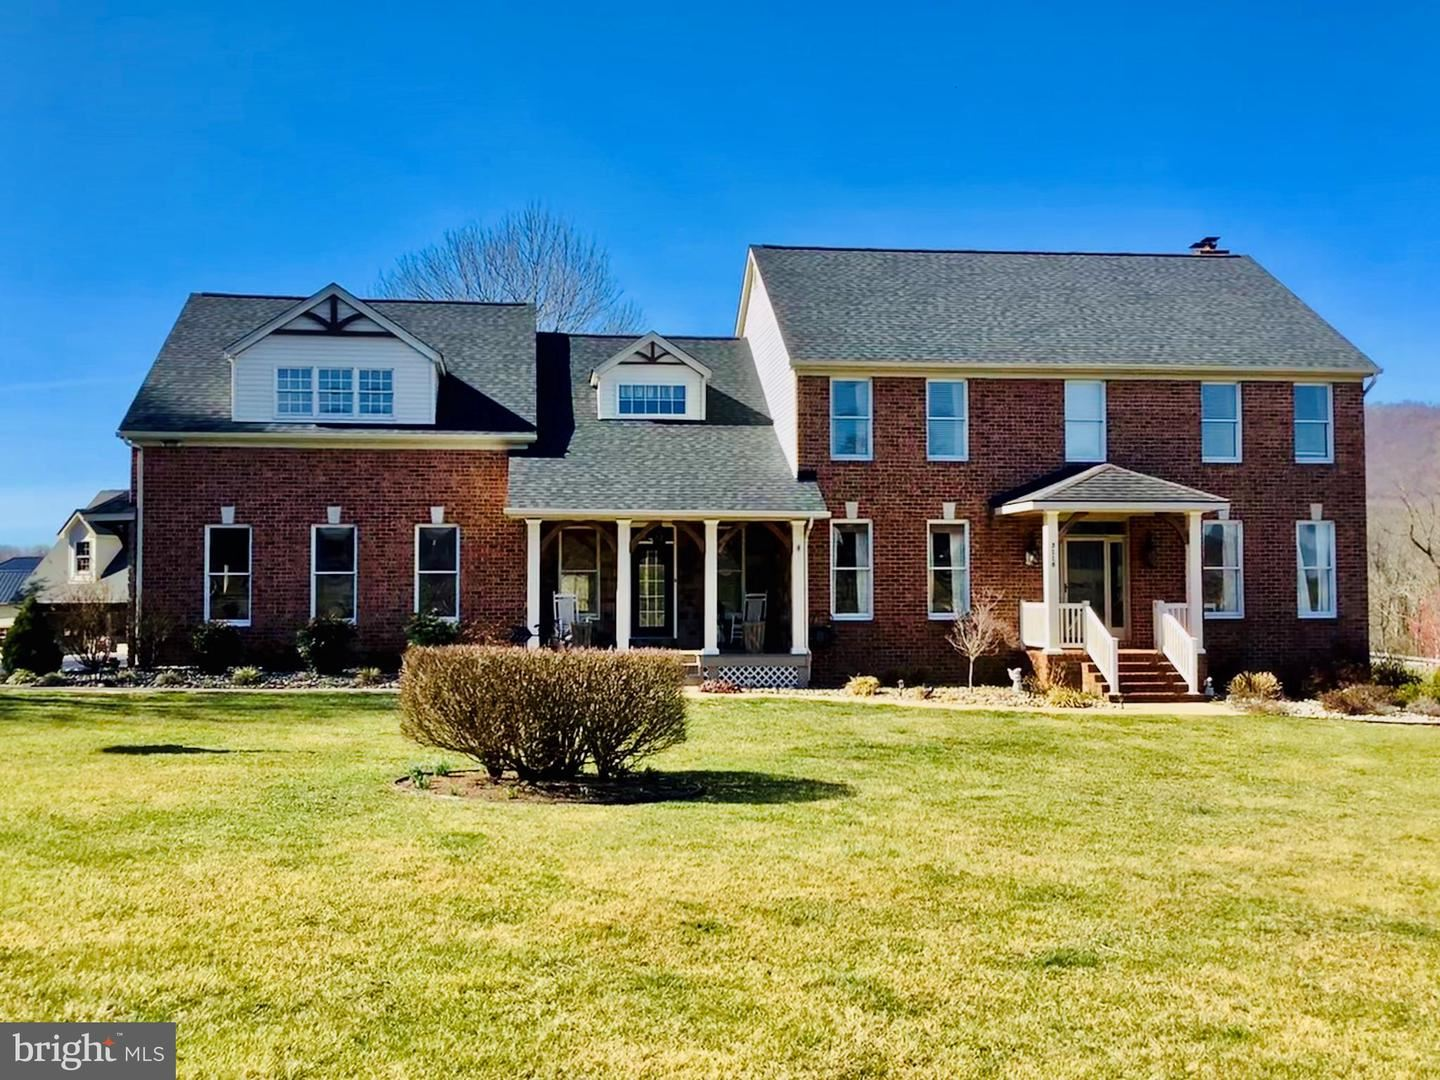 Photo of 3116 VALLEY VIEW CT, ROHRERSVILLE, MD 21779 (MLS # MDWA172202)